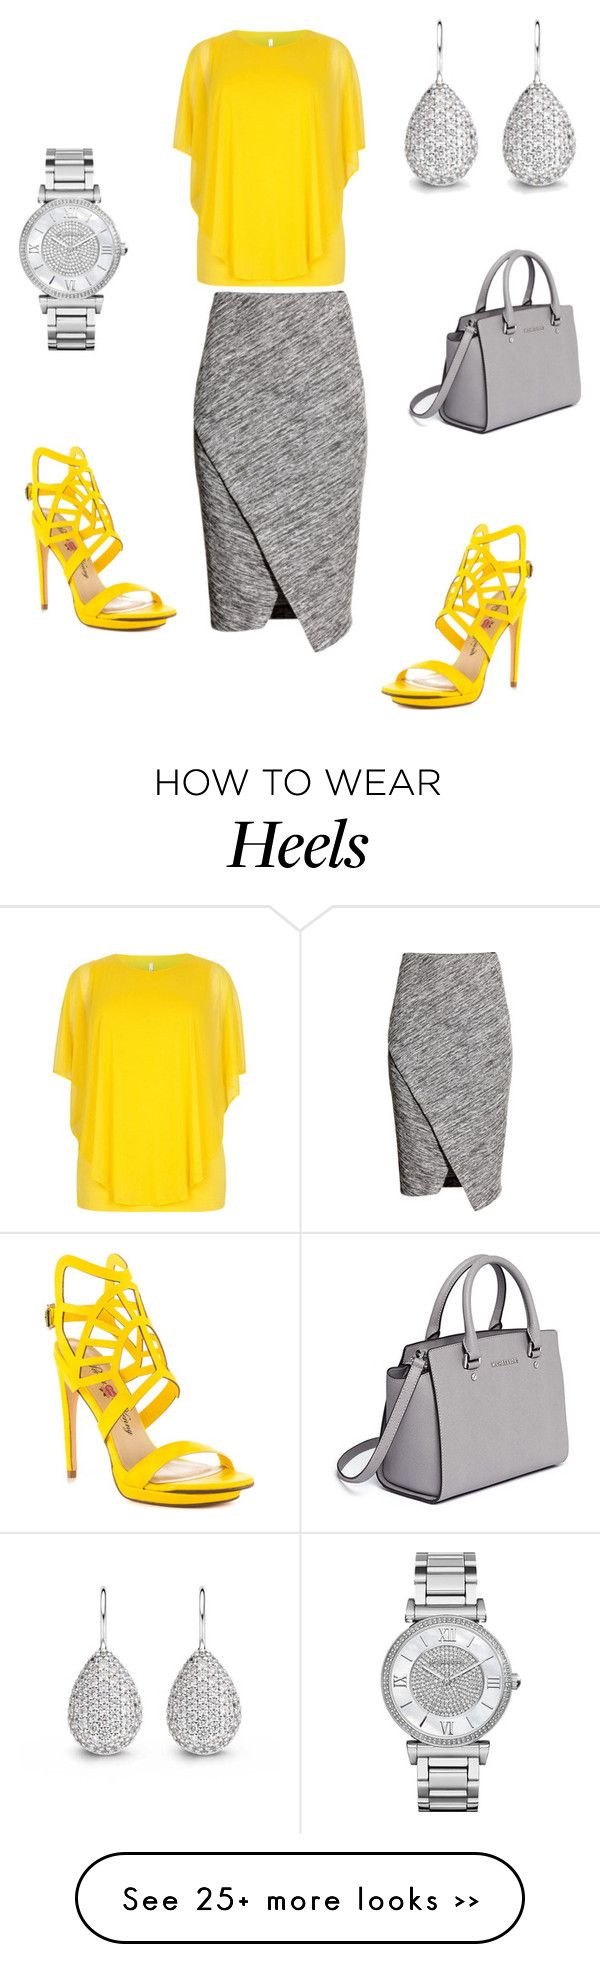 """""""Untitled #237"""" by essiekuda on Polyvore featuring H&M, Michael Kors, Penny Loves Kenny and MICHAEL Michael Kors"""